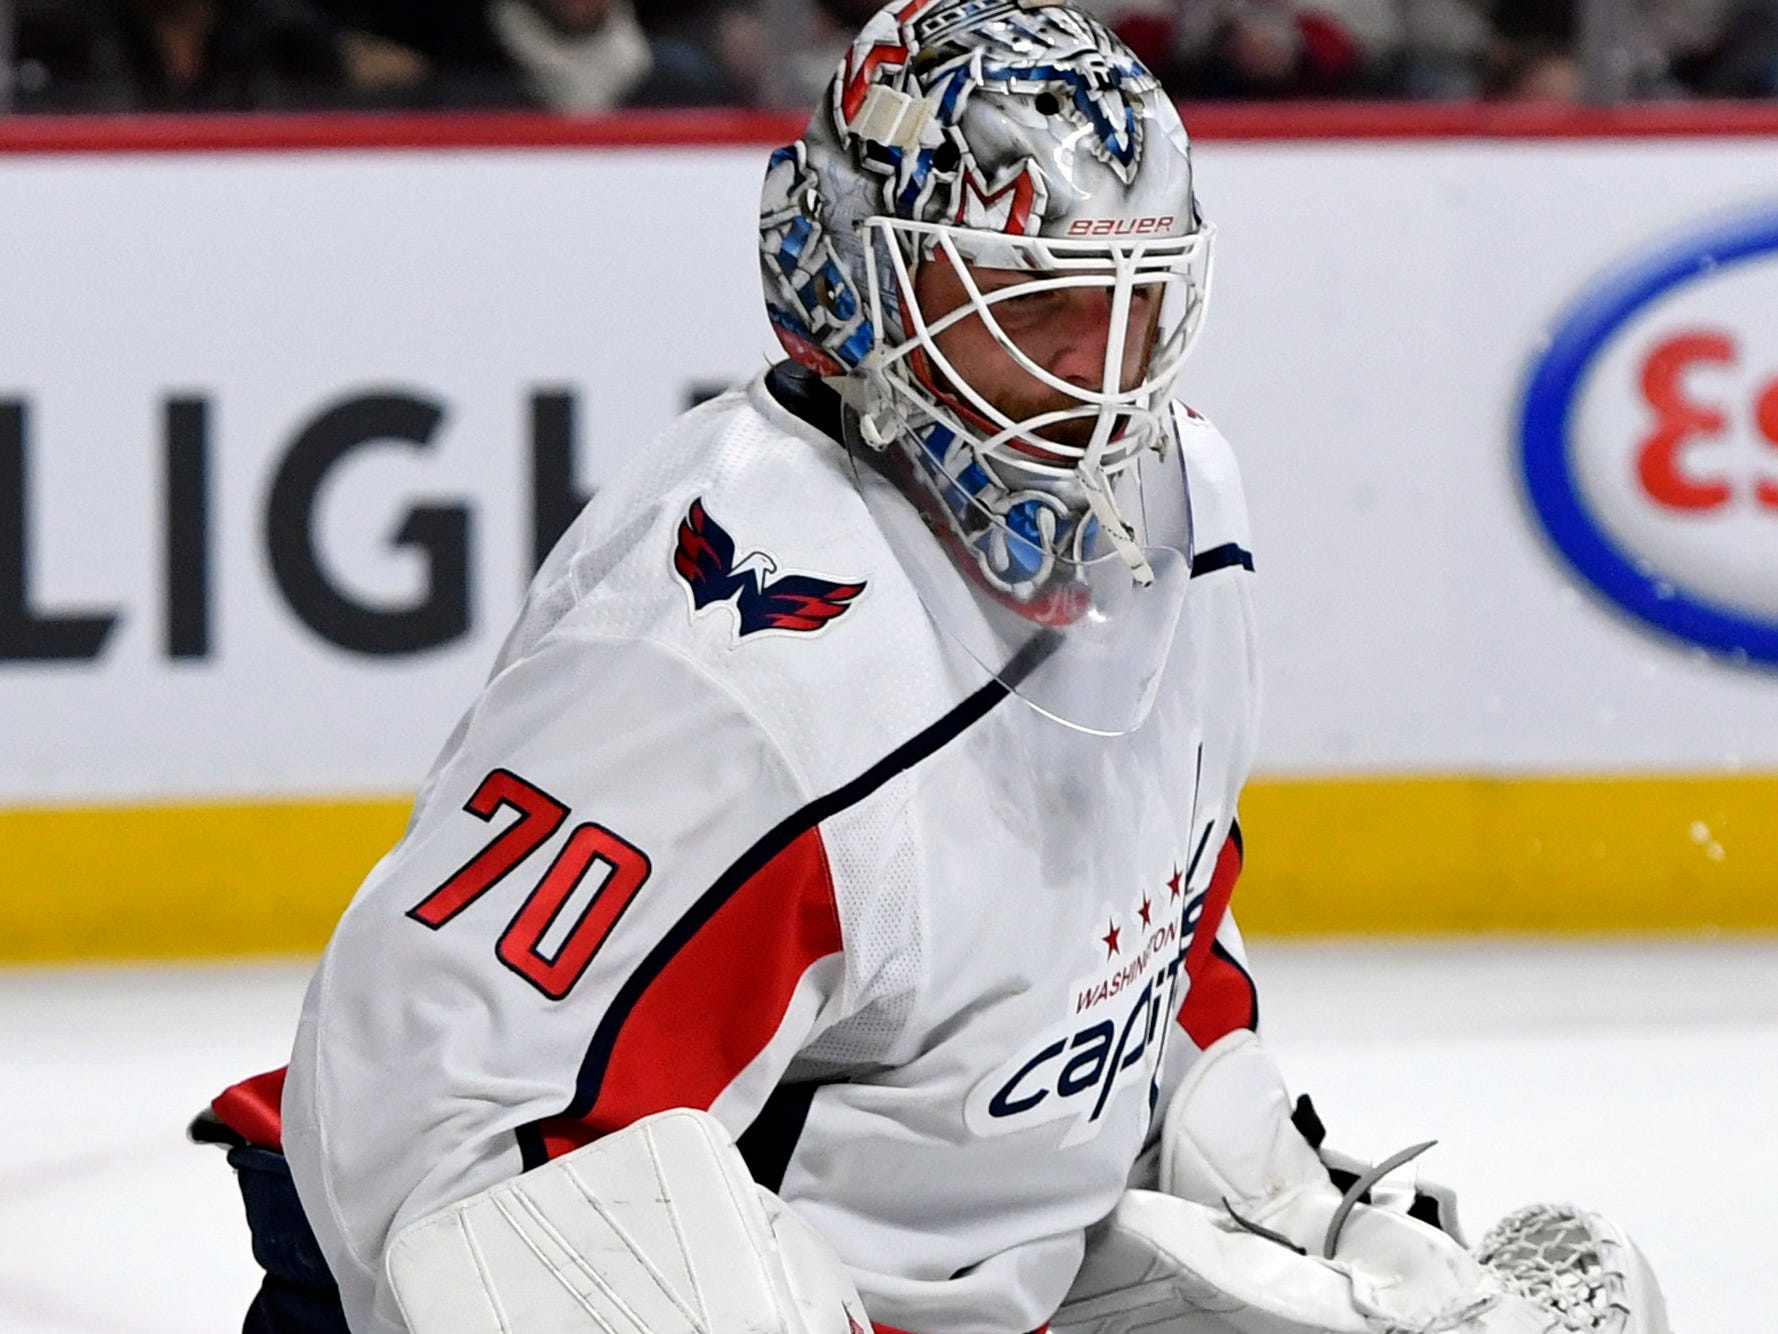 70. Braden Holtby (2010 to present)